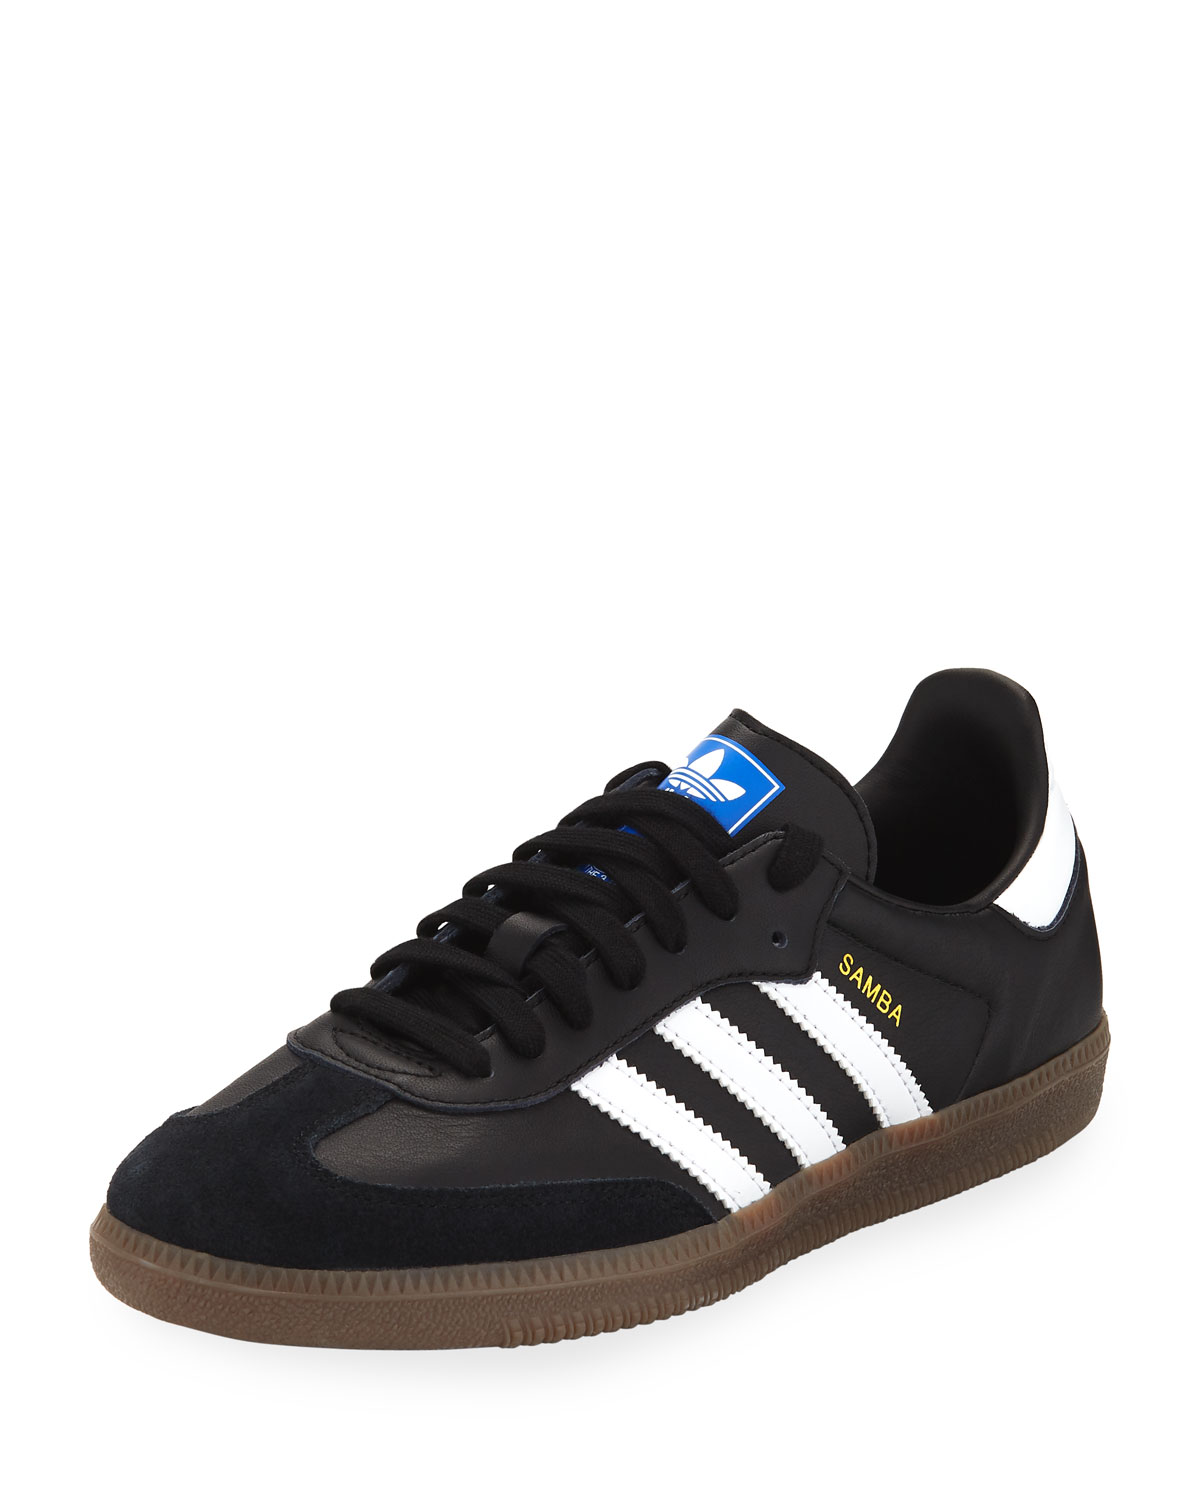 Adidas Samba Original Leather Suede Sneakers a392ae612